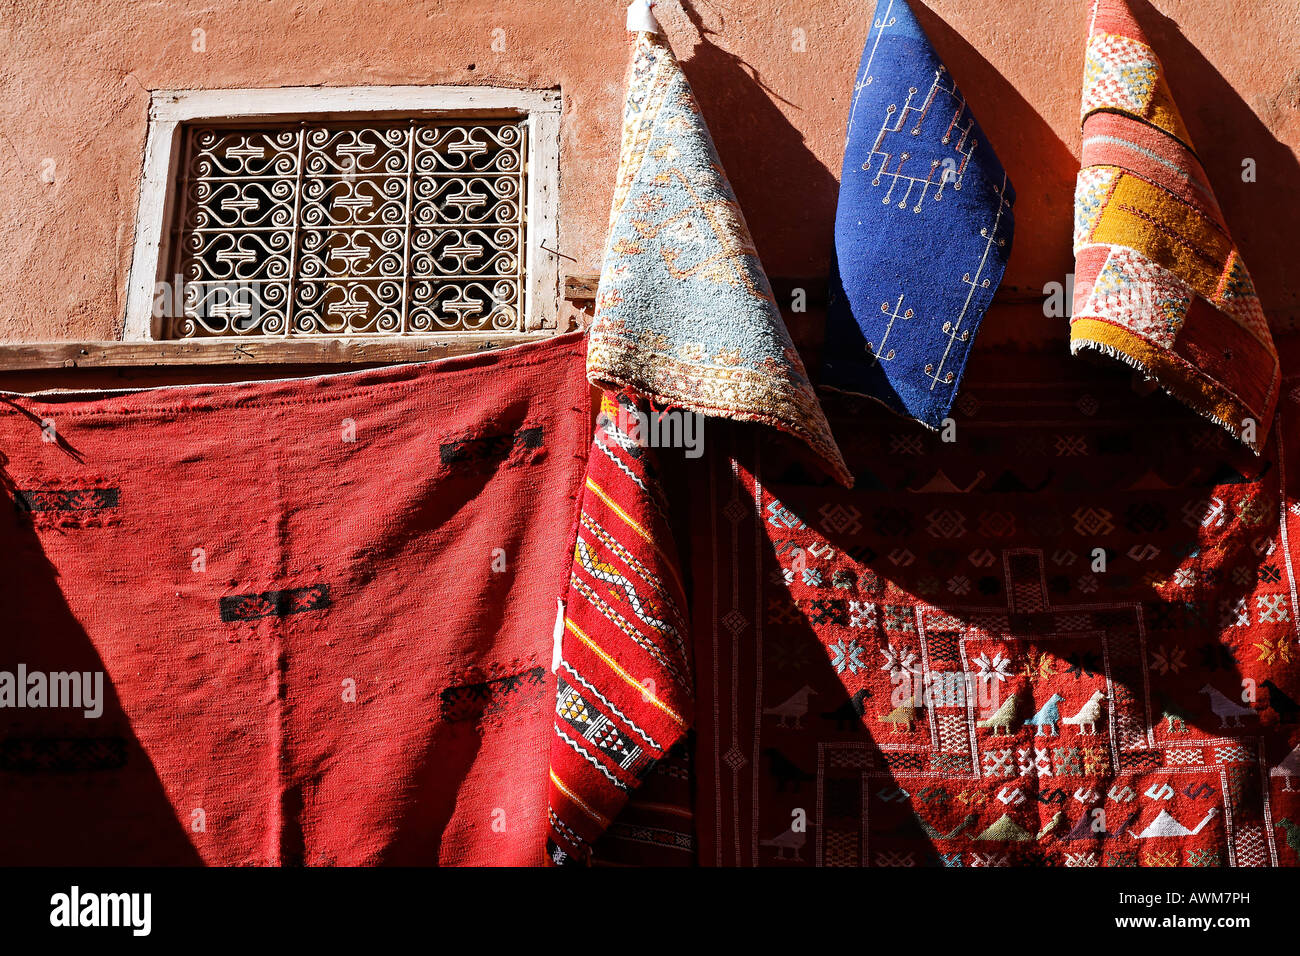 Wall draped wit colourful Berber blankets, Souk, Marrakech, Morocco, Africa - Stock Image